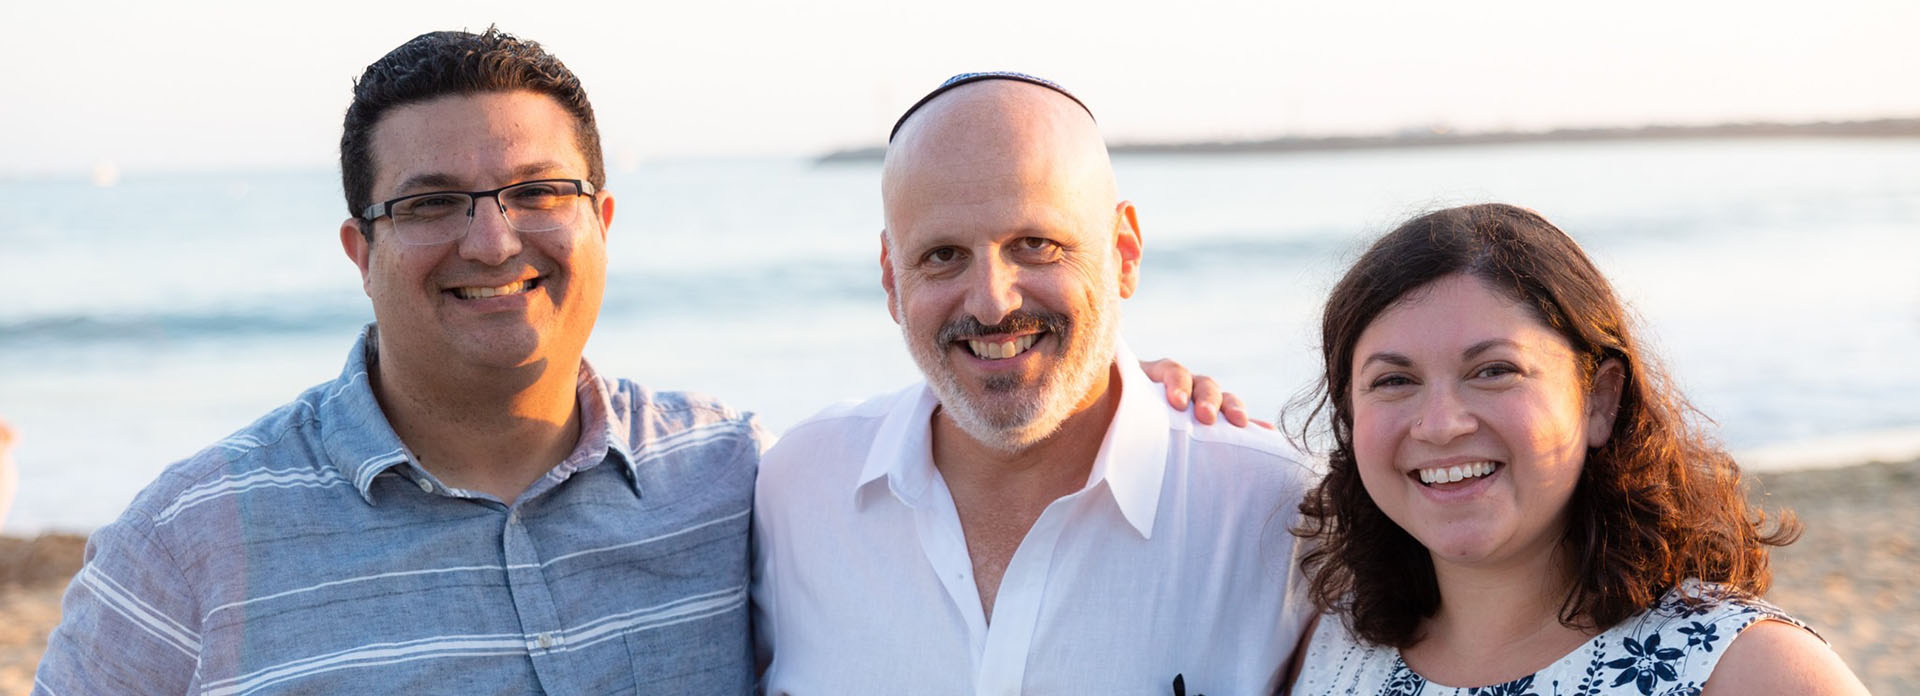 """<a href=""""/our-clergy""""                                     target="""""""">                                                                 <span class=""""slider_title"""">                                     MEET OUR CLERGY                                </span>                                                                 </a>                                                                                                                                                                                       <span class=""""slider_description"""">Jewish Advocates. Educators. Community Leaders</span>                                                                                     <a href=""""/our-clergy"""" class=""""slider_link""""                             target="""""""">                             Connect with our Rabbis                            </a>"""